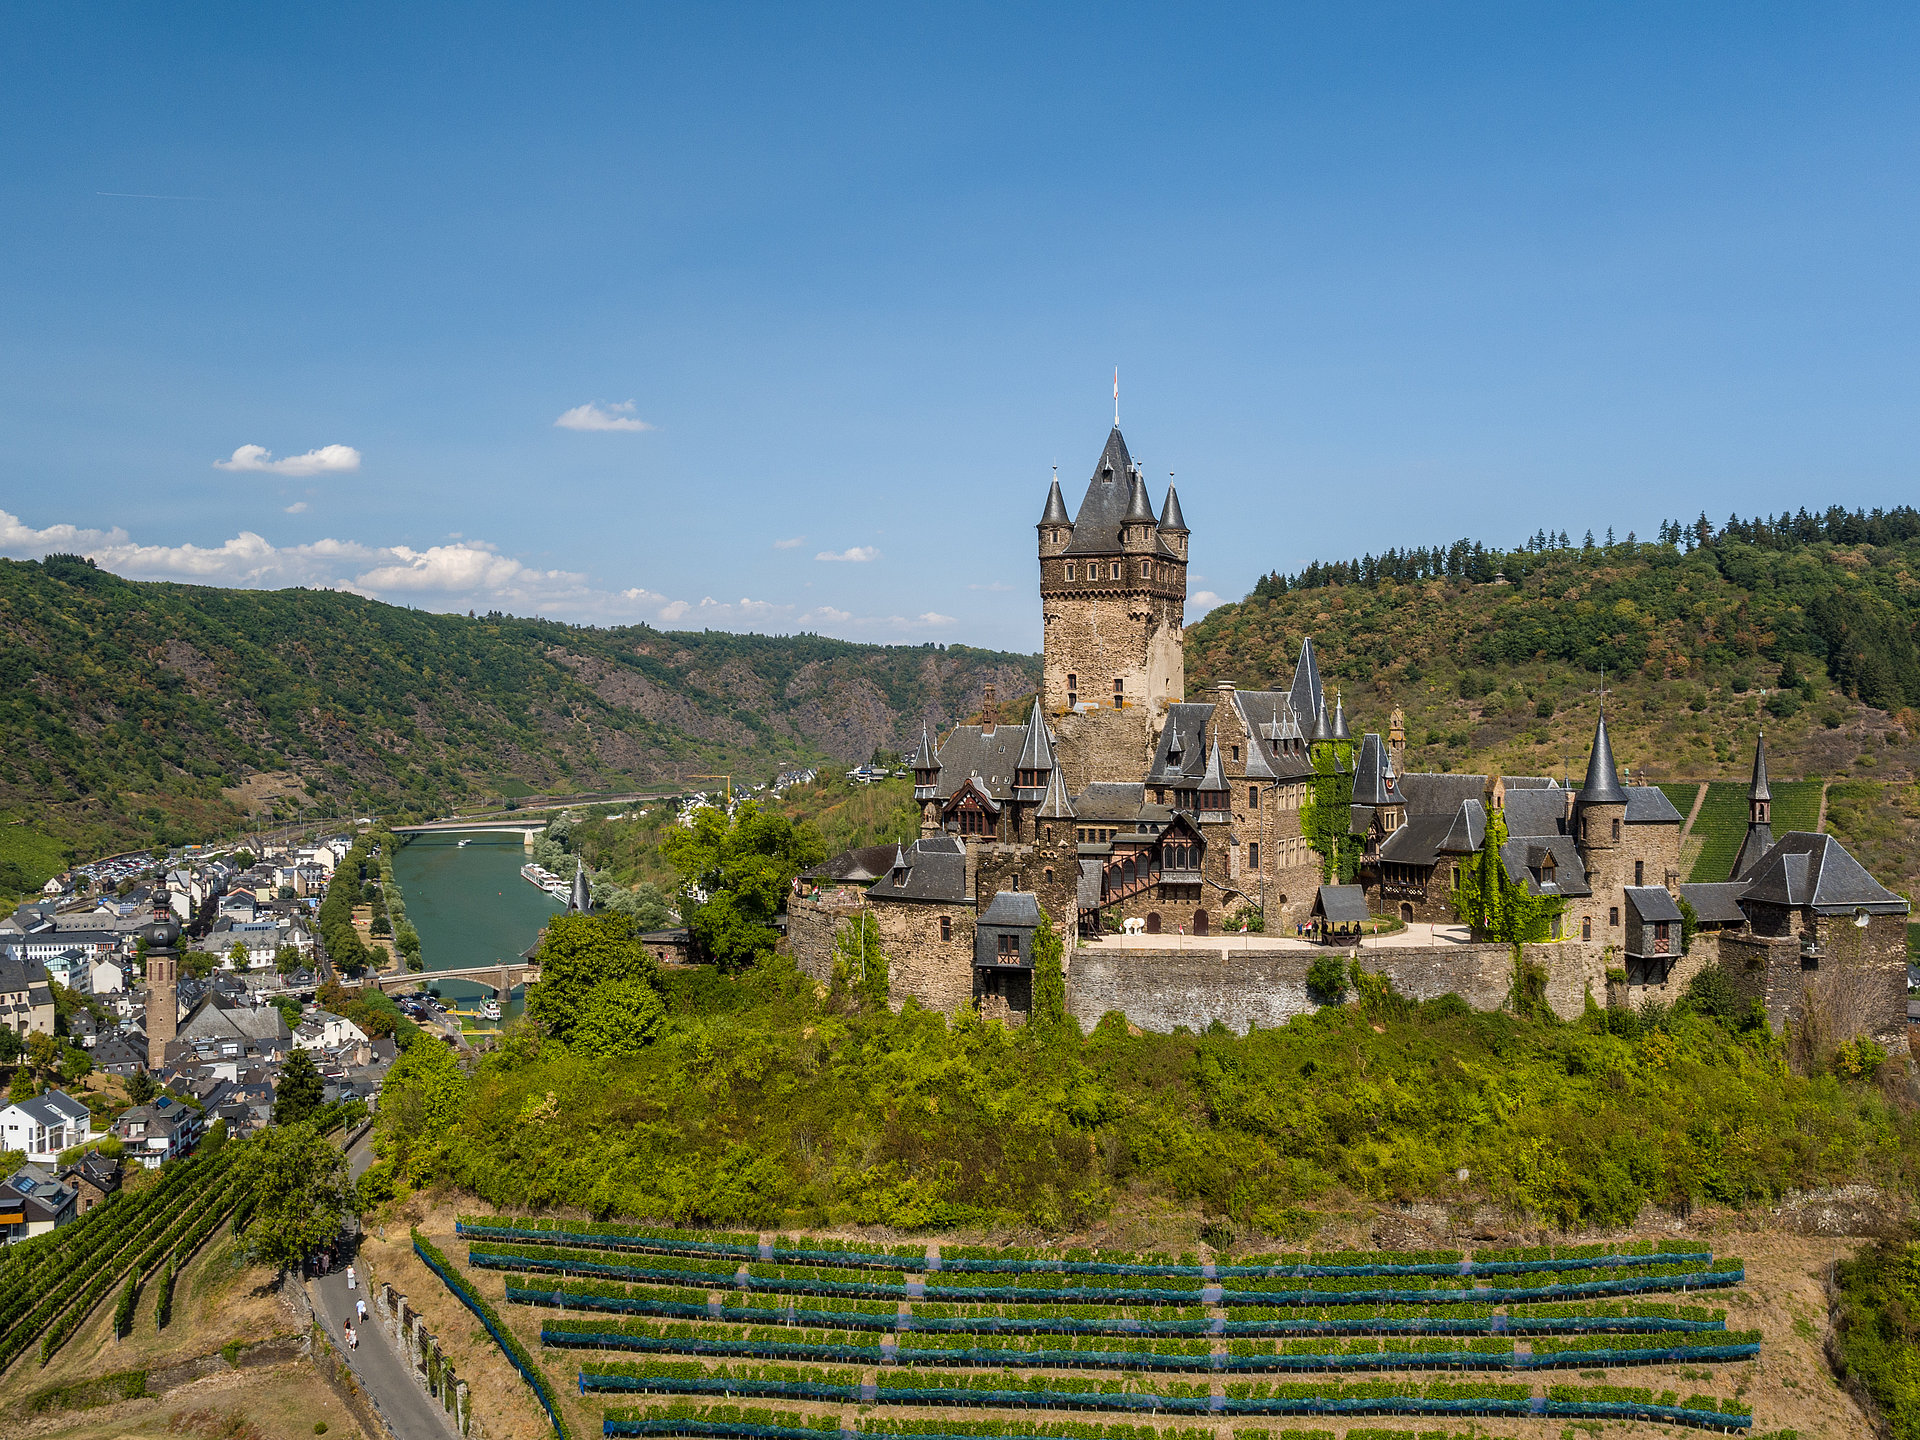 The Reichsburg castle in Cochem, Moselle